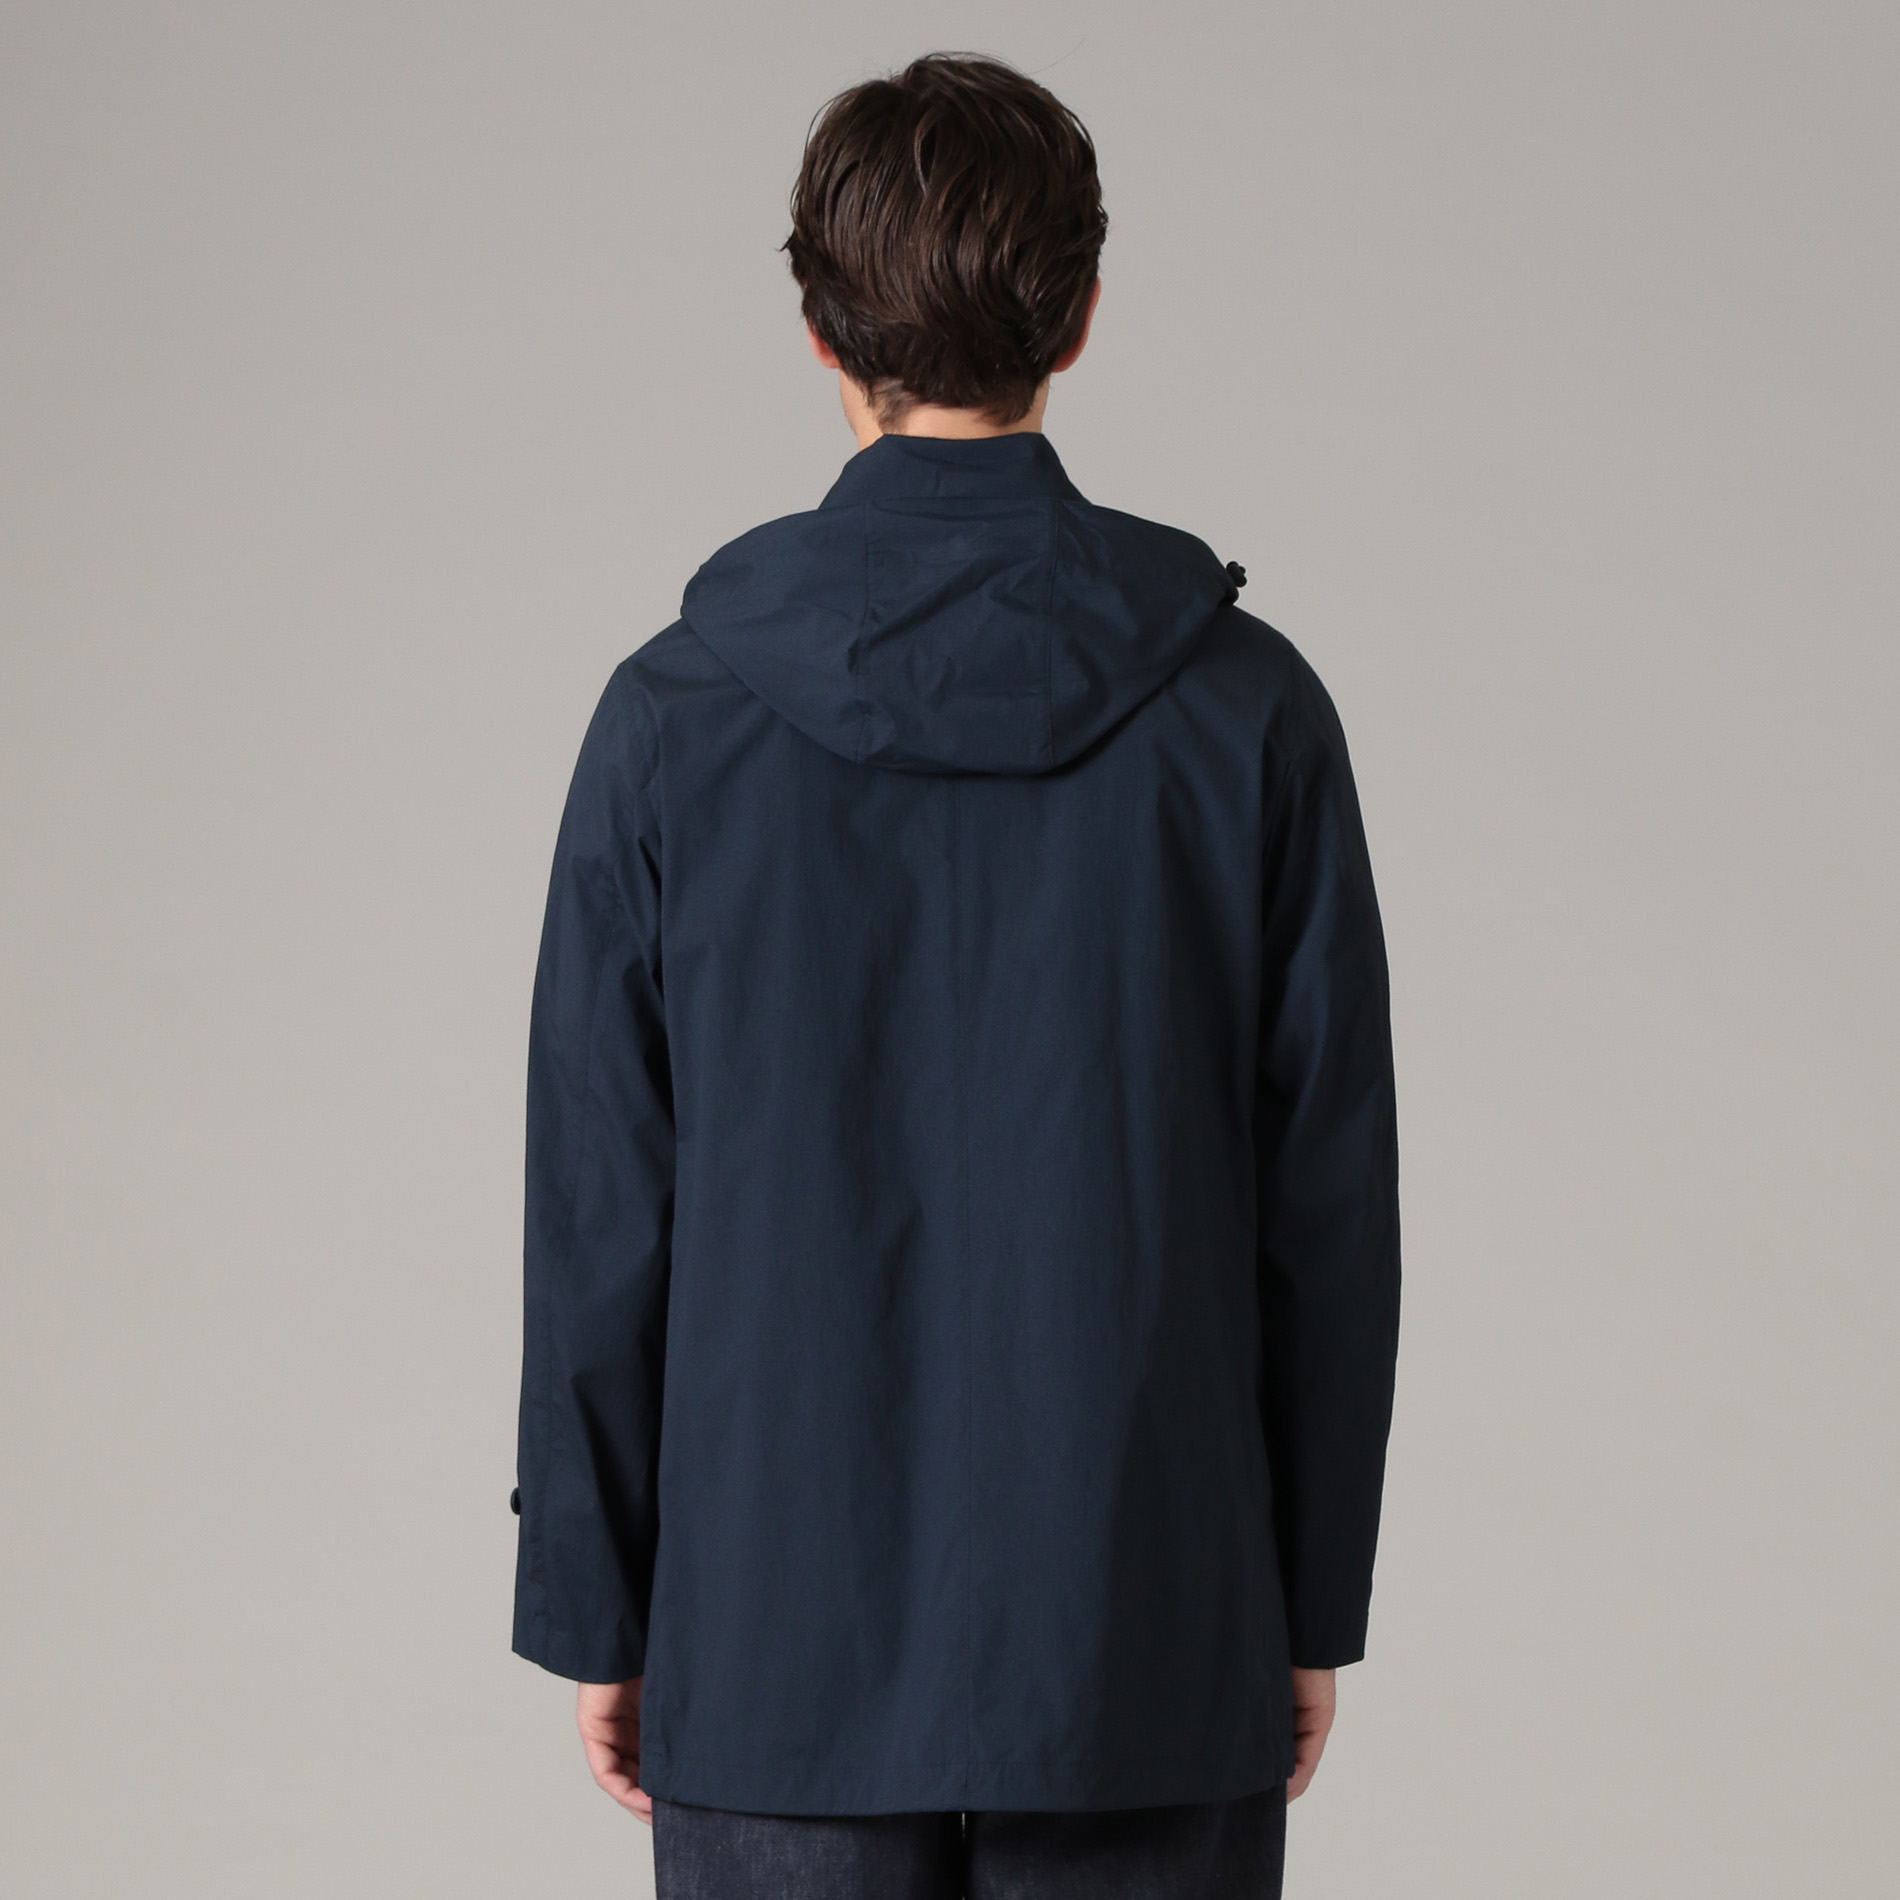 【FEATHER-TECH PAC】DUNOON HOOD MLショート